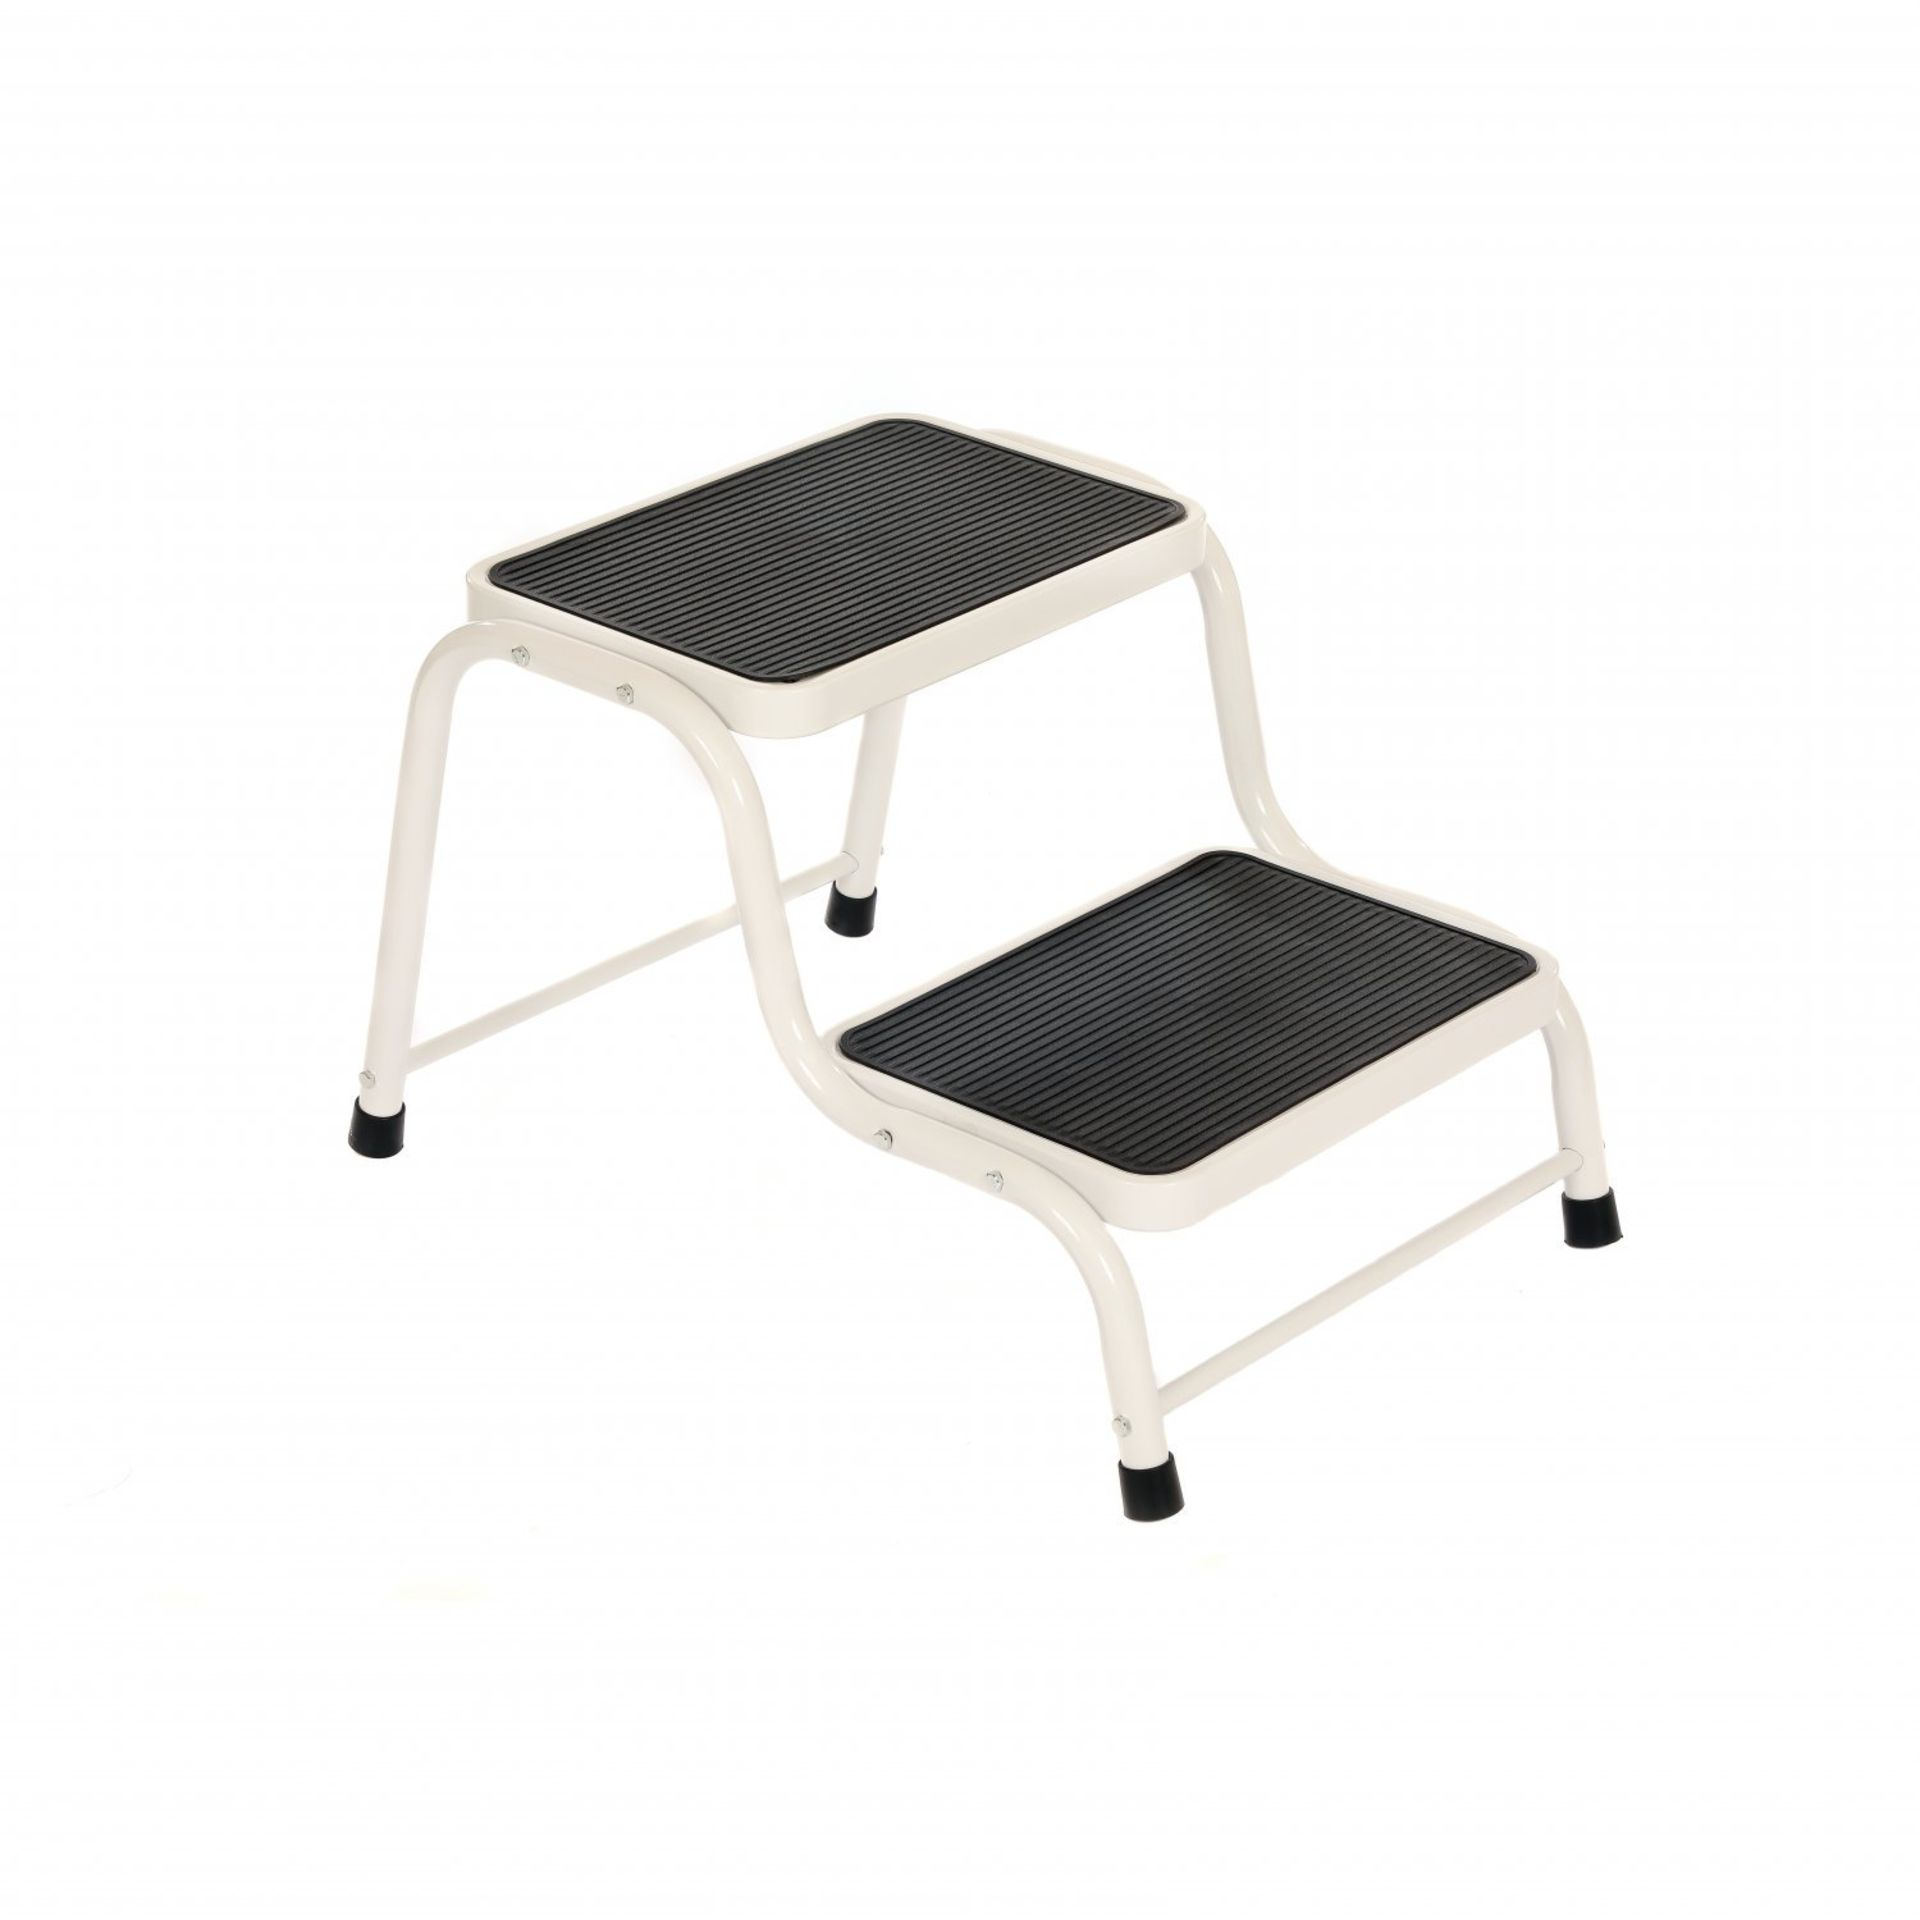 Lot 12 - (RU7) Double Caravan Step Stool Steel Non Slip Rubber Tread Safety The double steps are idea...